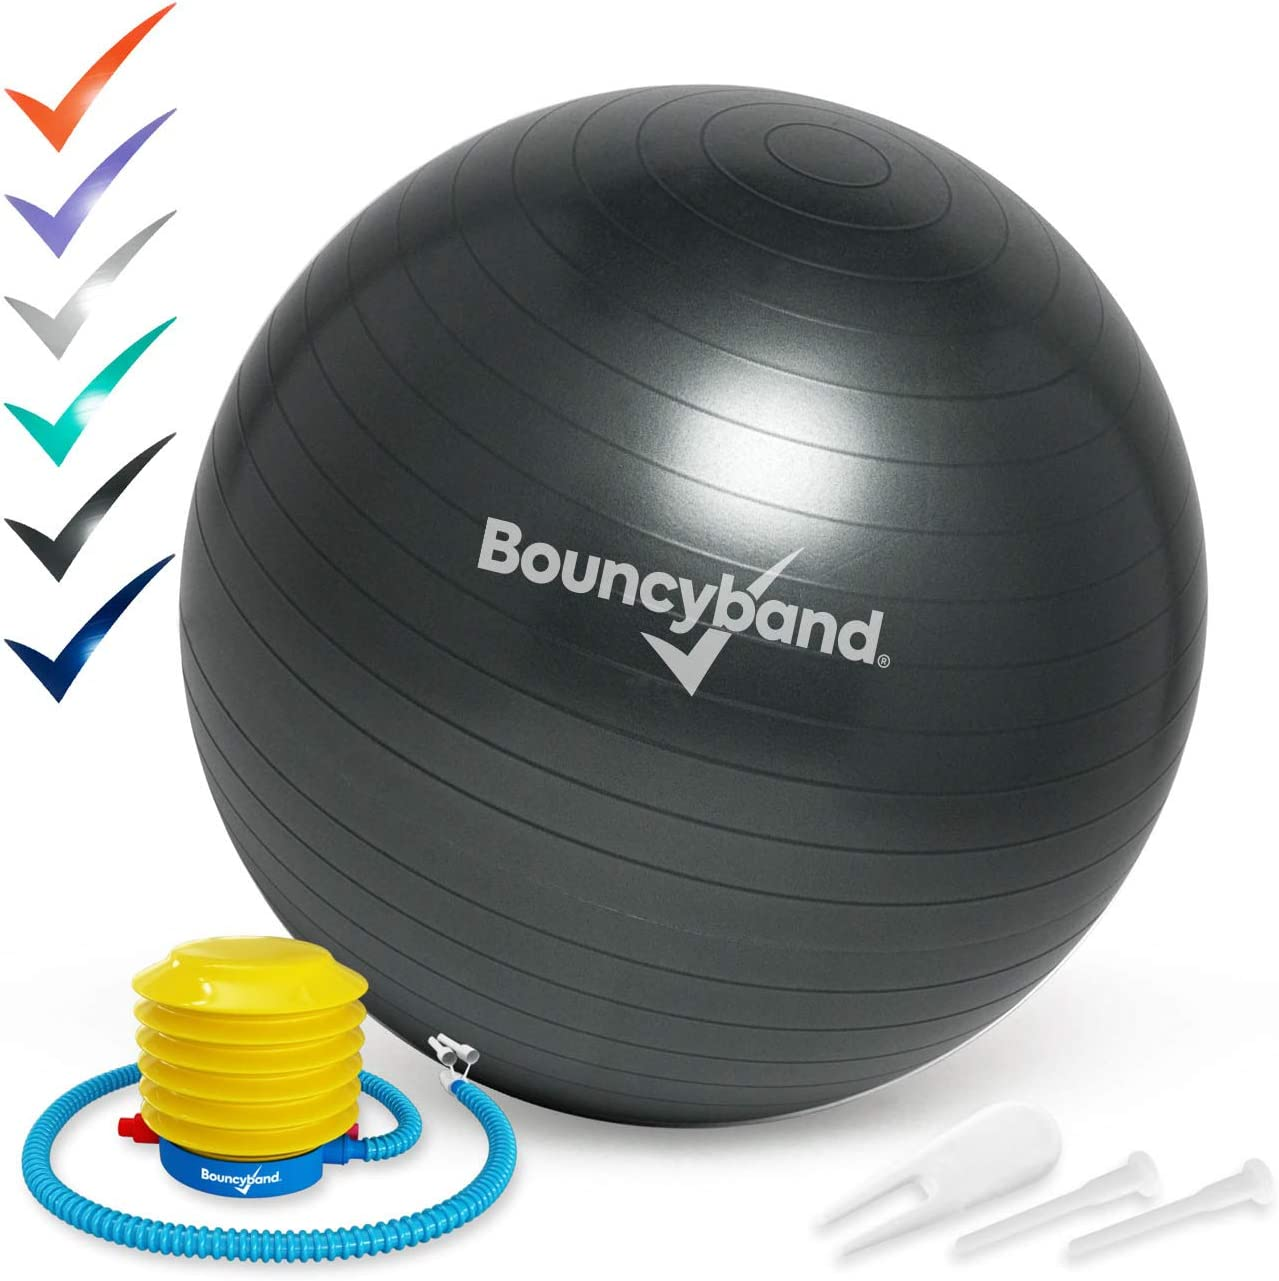 Balance Ball Small, Dark Gray No-Roll Weighted Seat is a Flexible Chair for School Office or Home